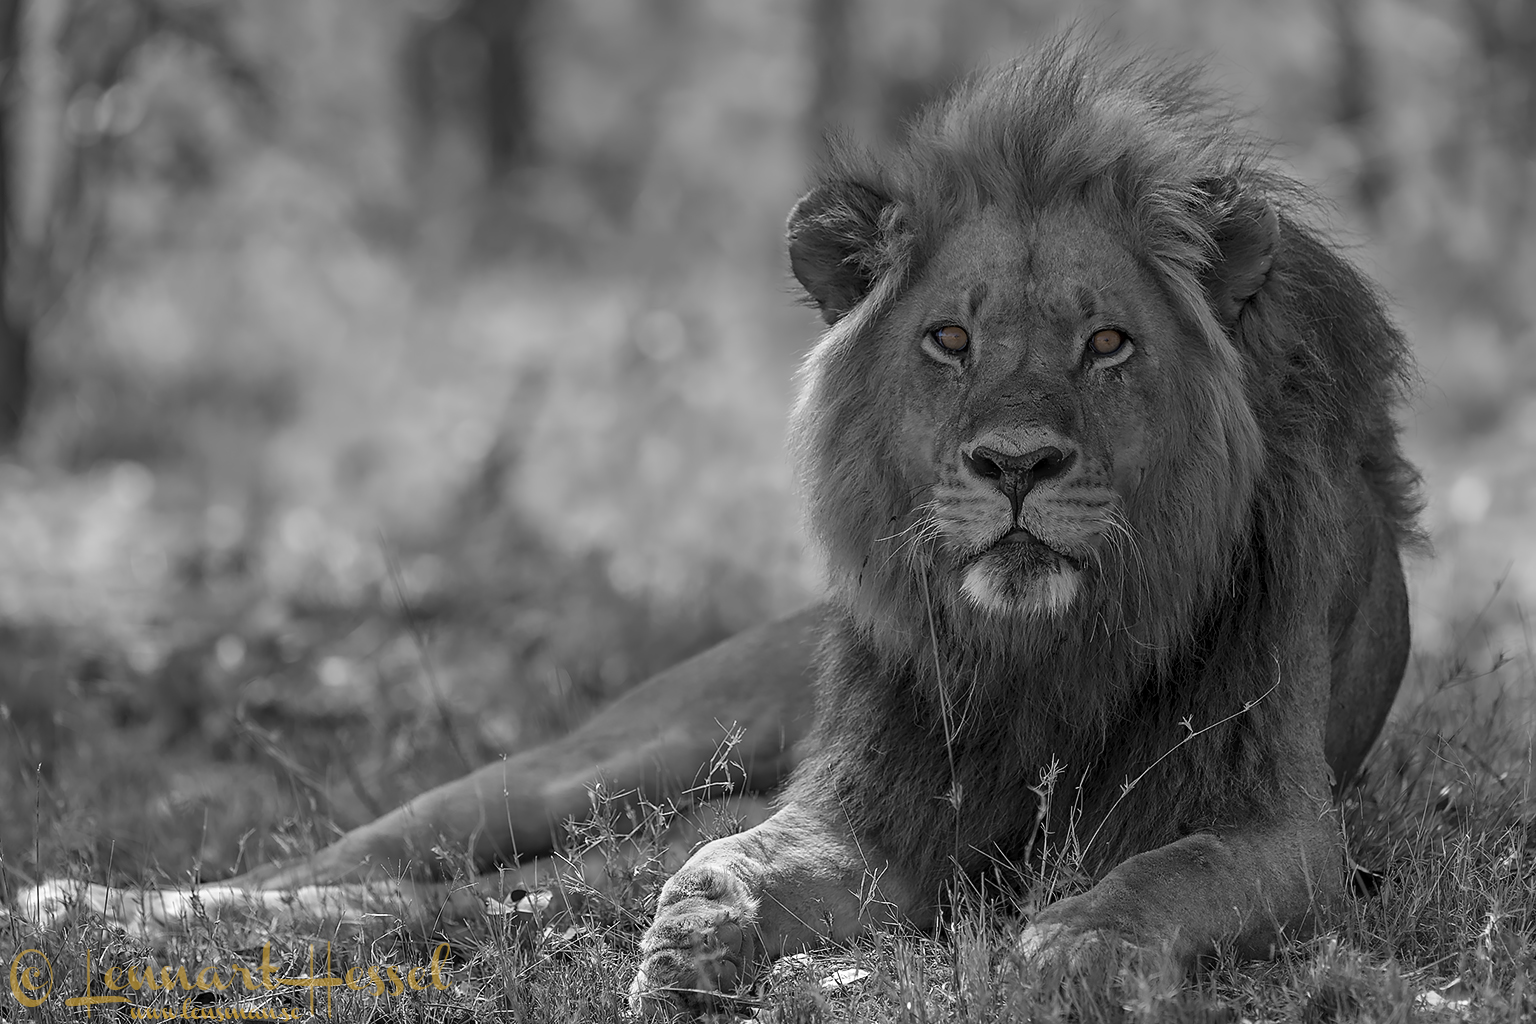 Lion in Moremi Game Reserve, Botswana - animal